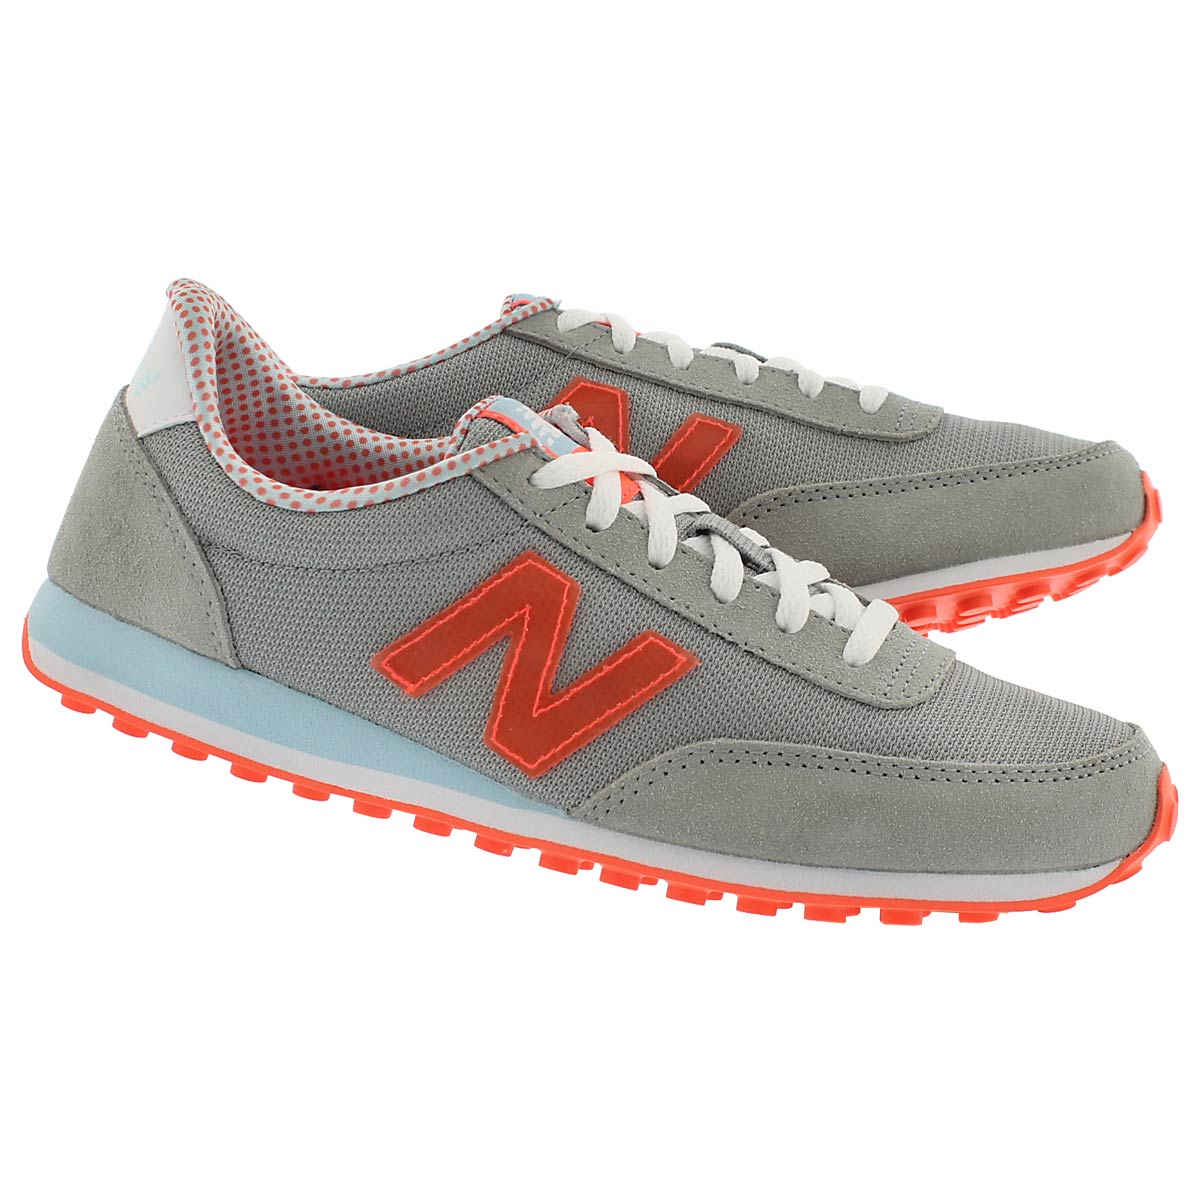 Lds 410 grey/red lace up sneaker